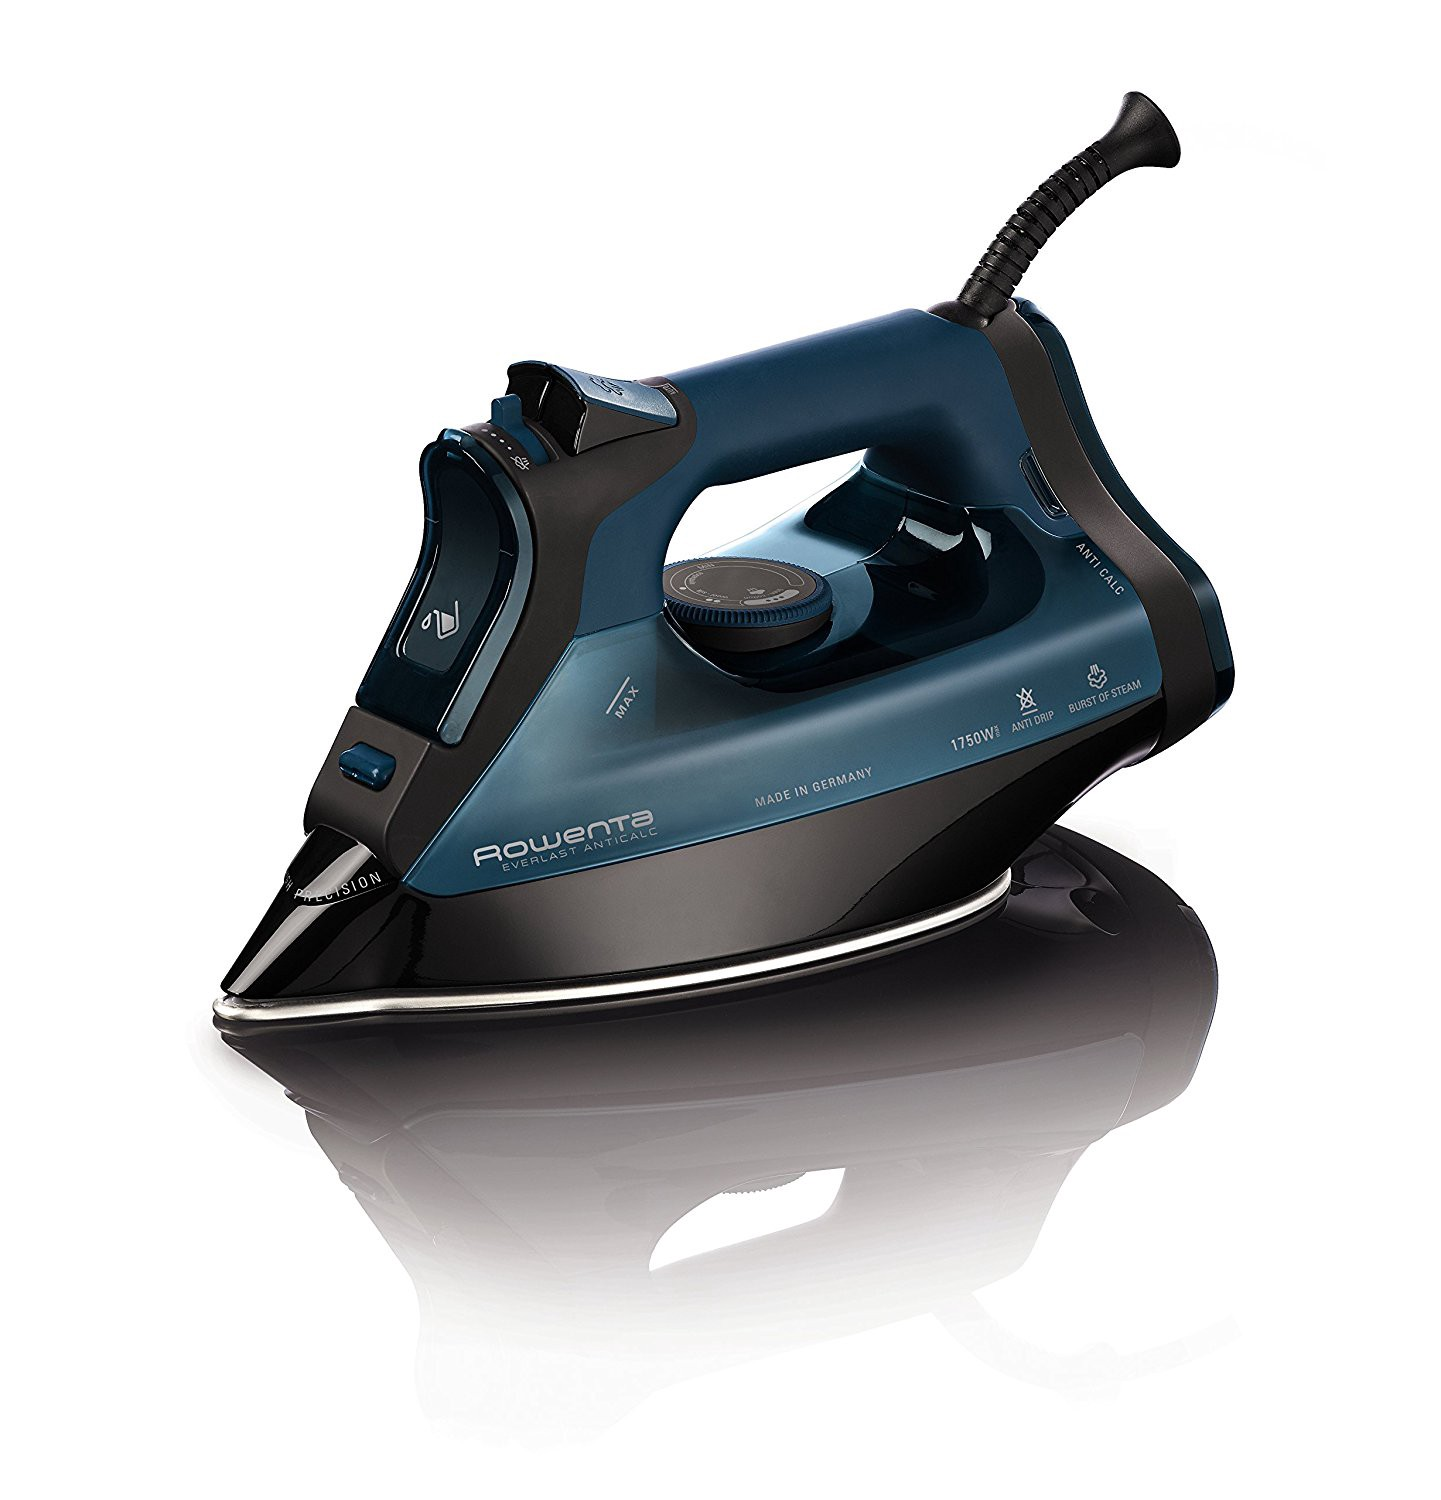 best steam irons for creases in 2017 ironsexpert medium. Black Bedroom Furniture Sets. Home Design Ideas